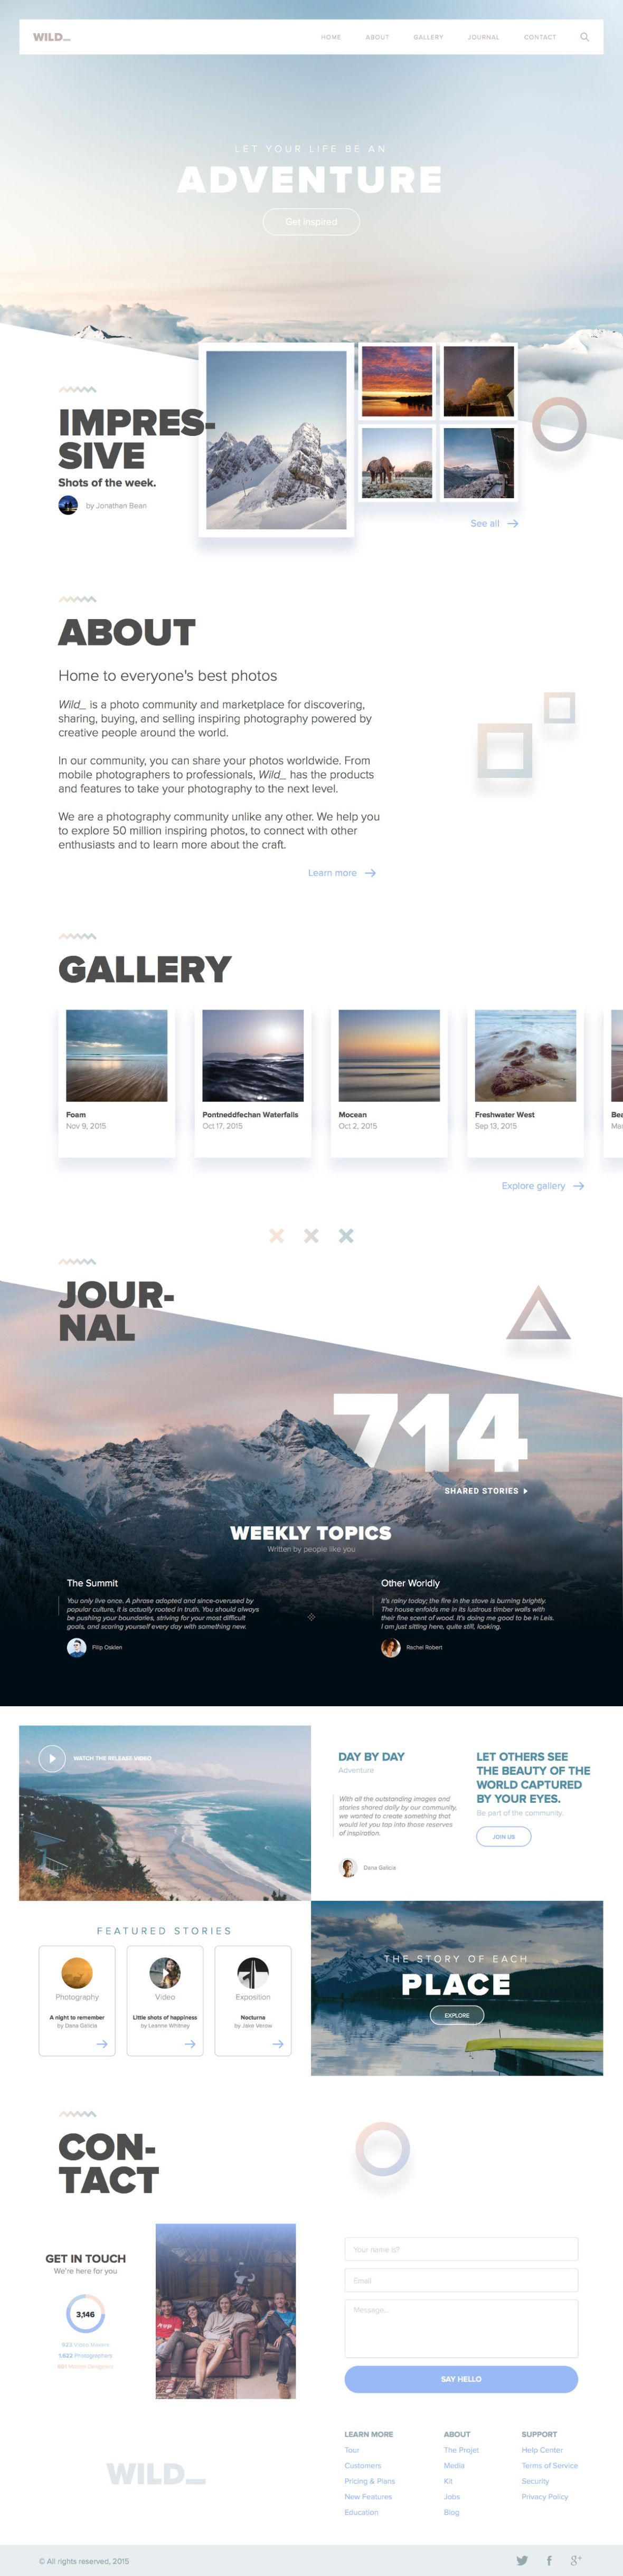 Free Wild Website Template for Sketch